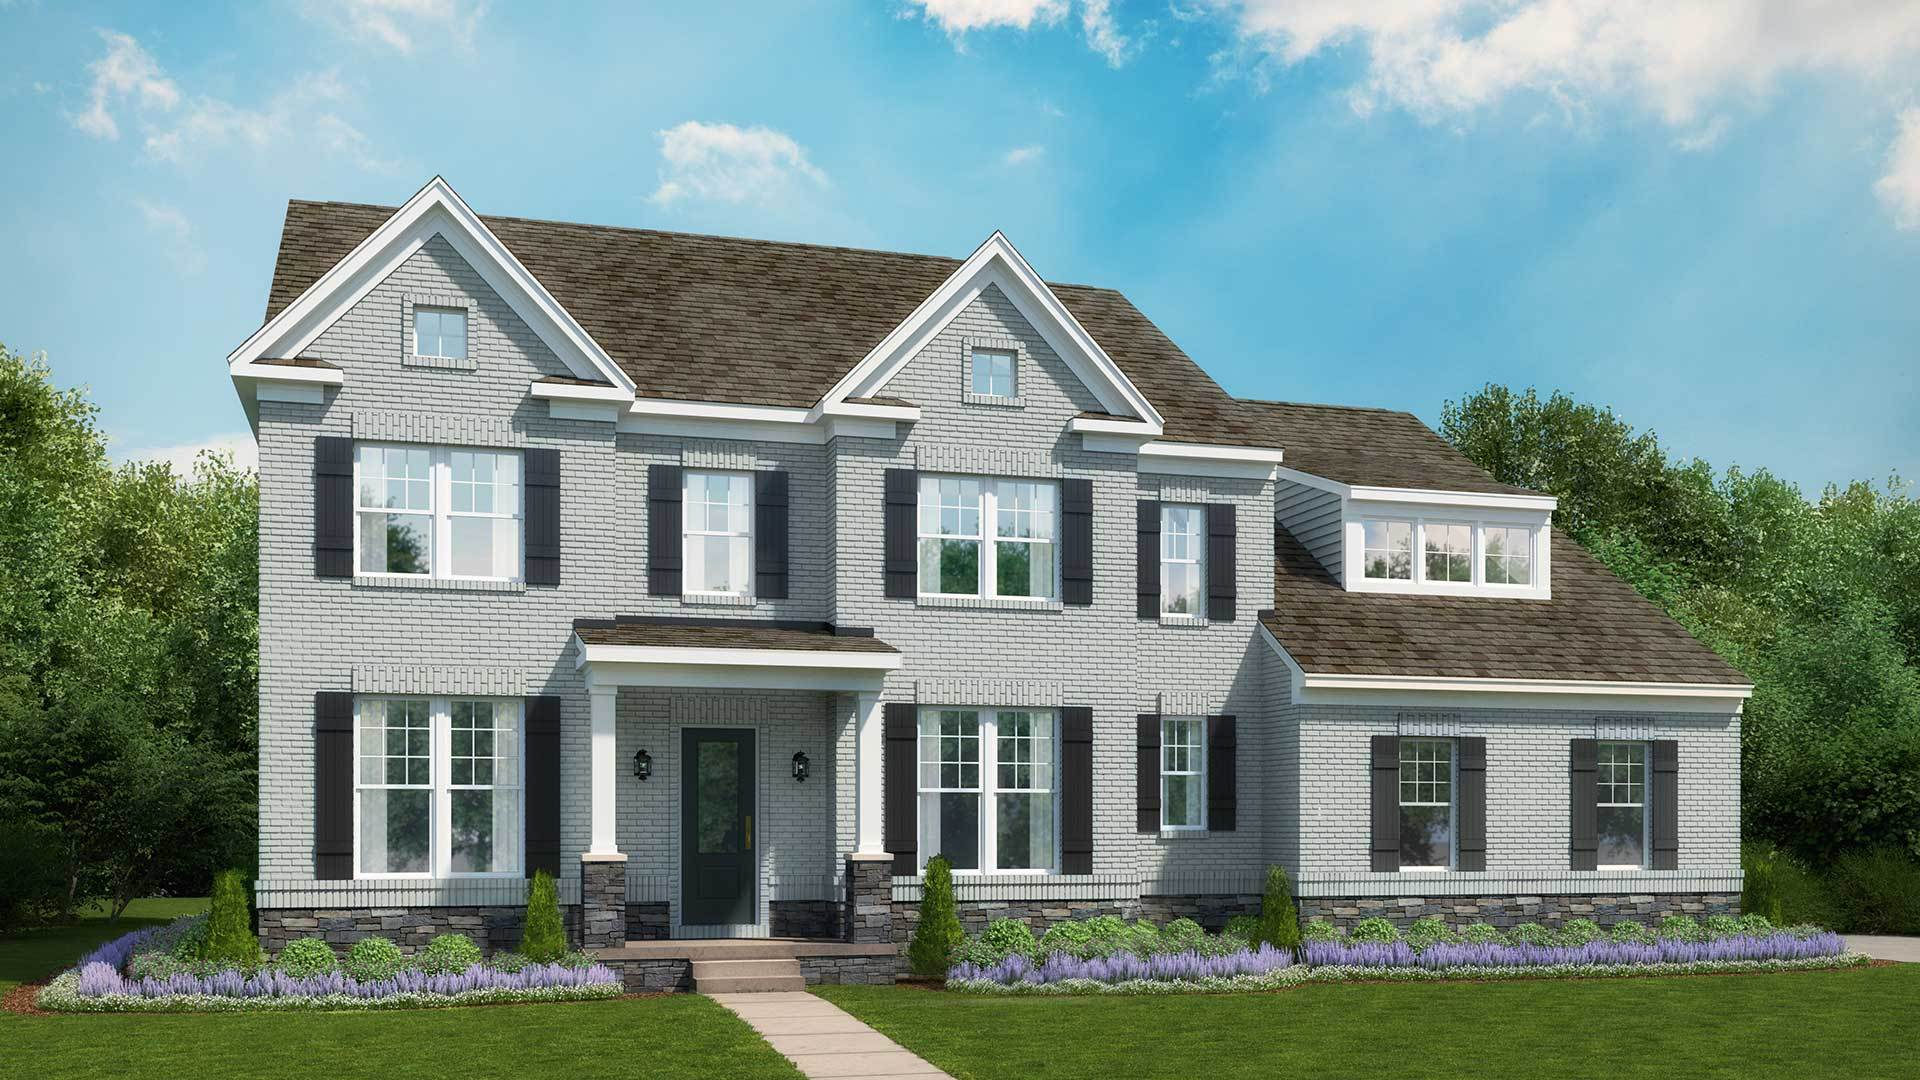 Single Family for Active at Potomac Reserve - Landon 14933 Minnieville Road Manassas, Virginia 20112 United States